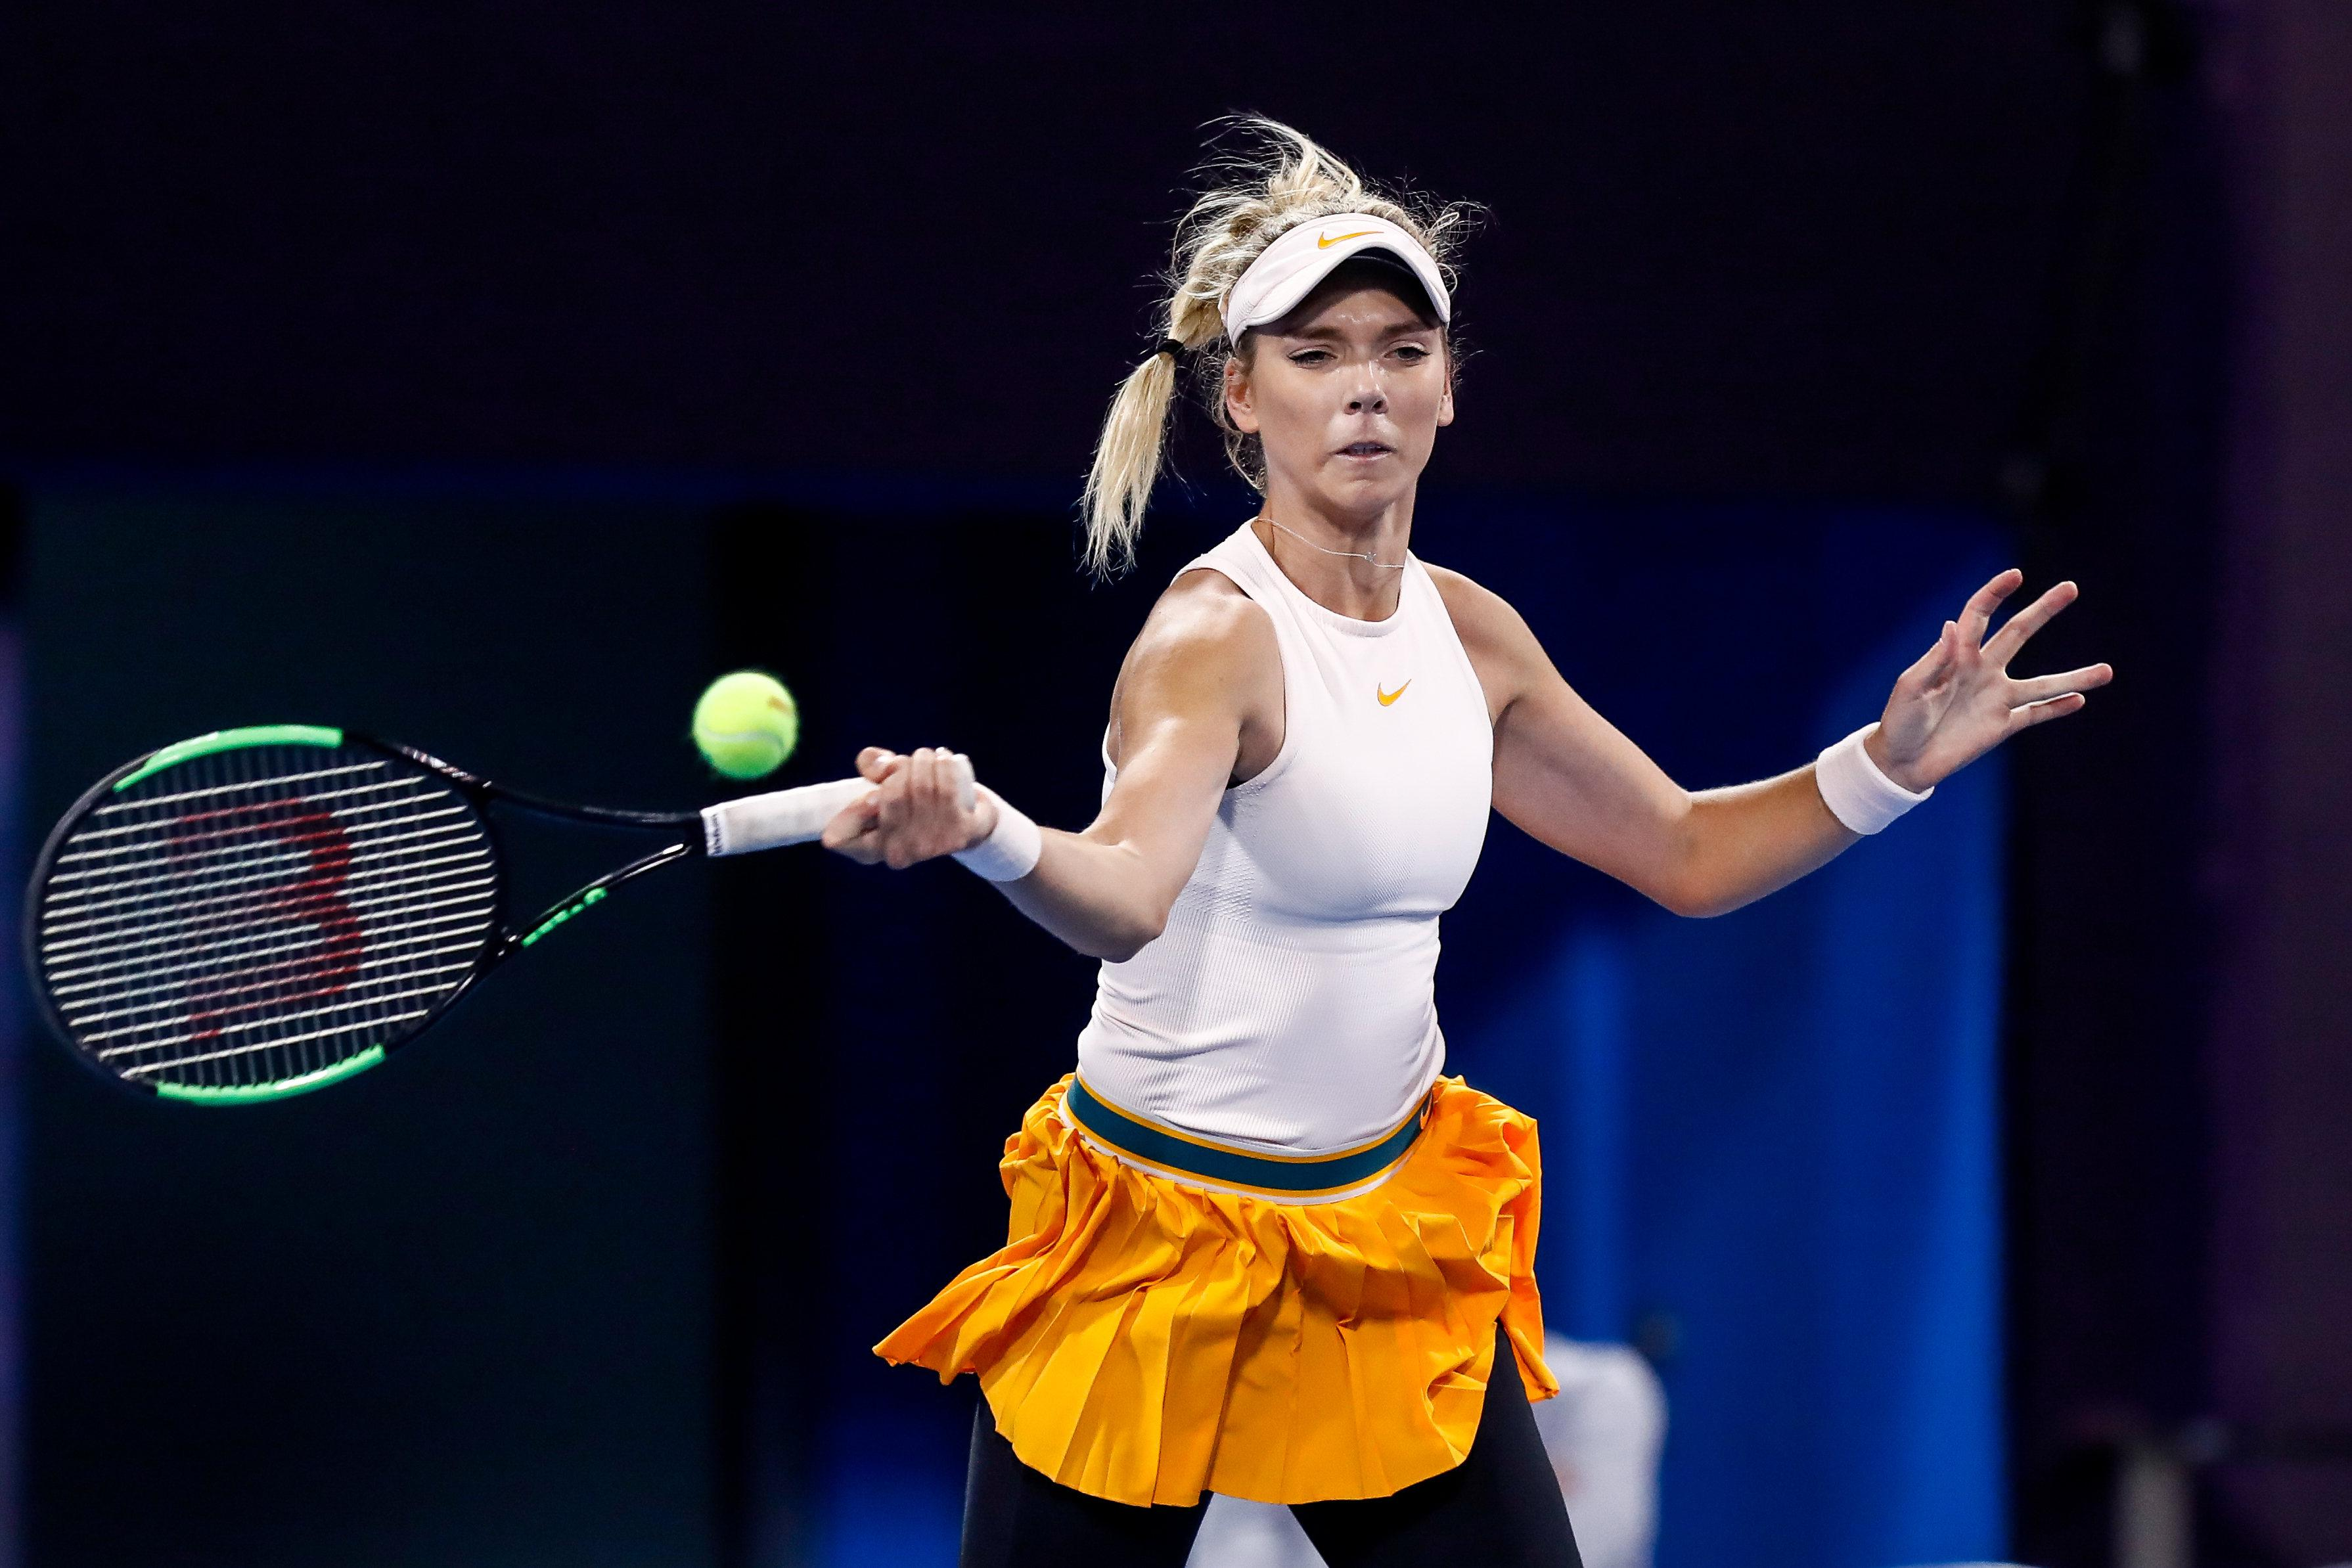 Katie Boulter is now ranked 96th in the world -- her highest career placing